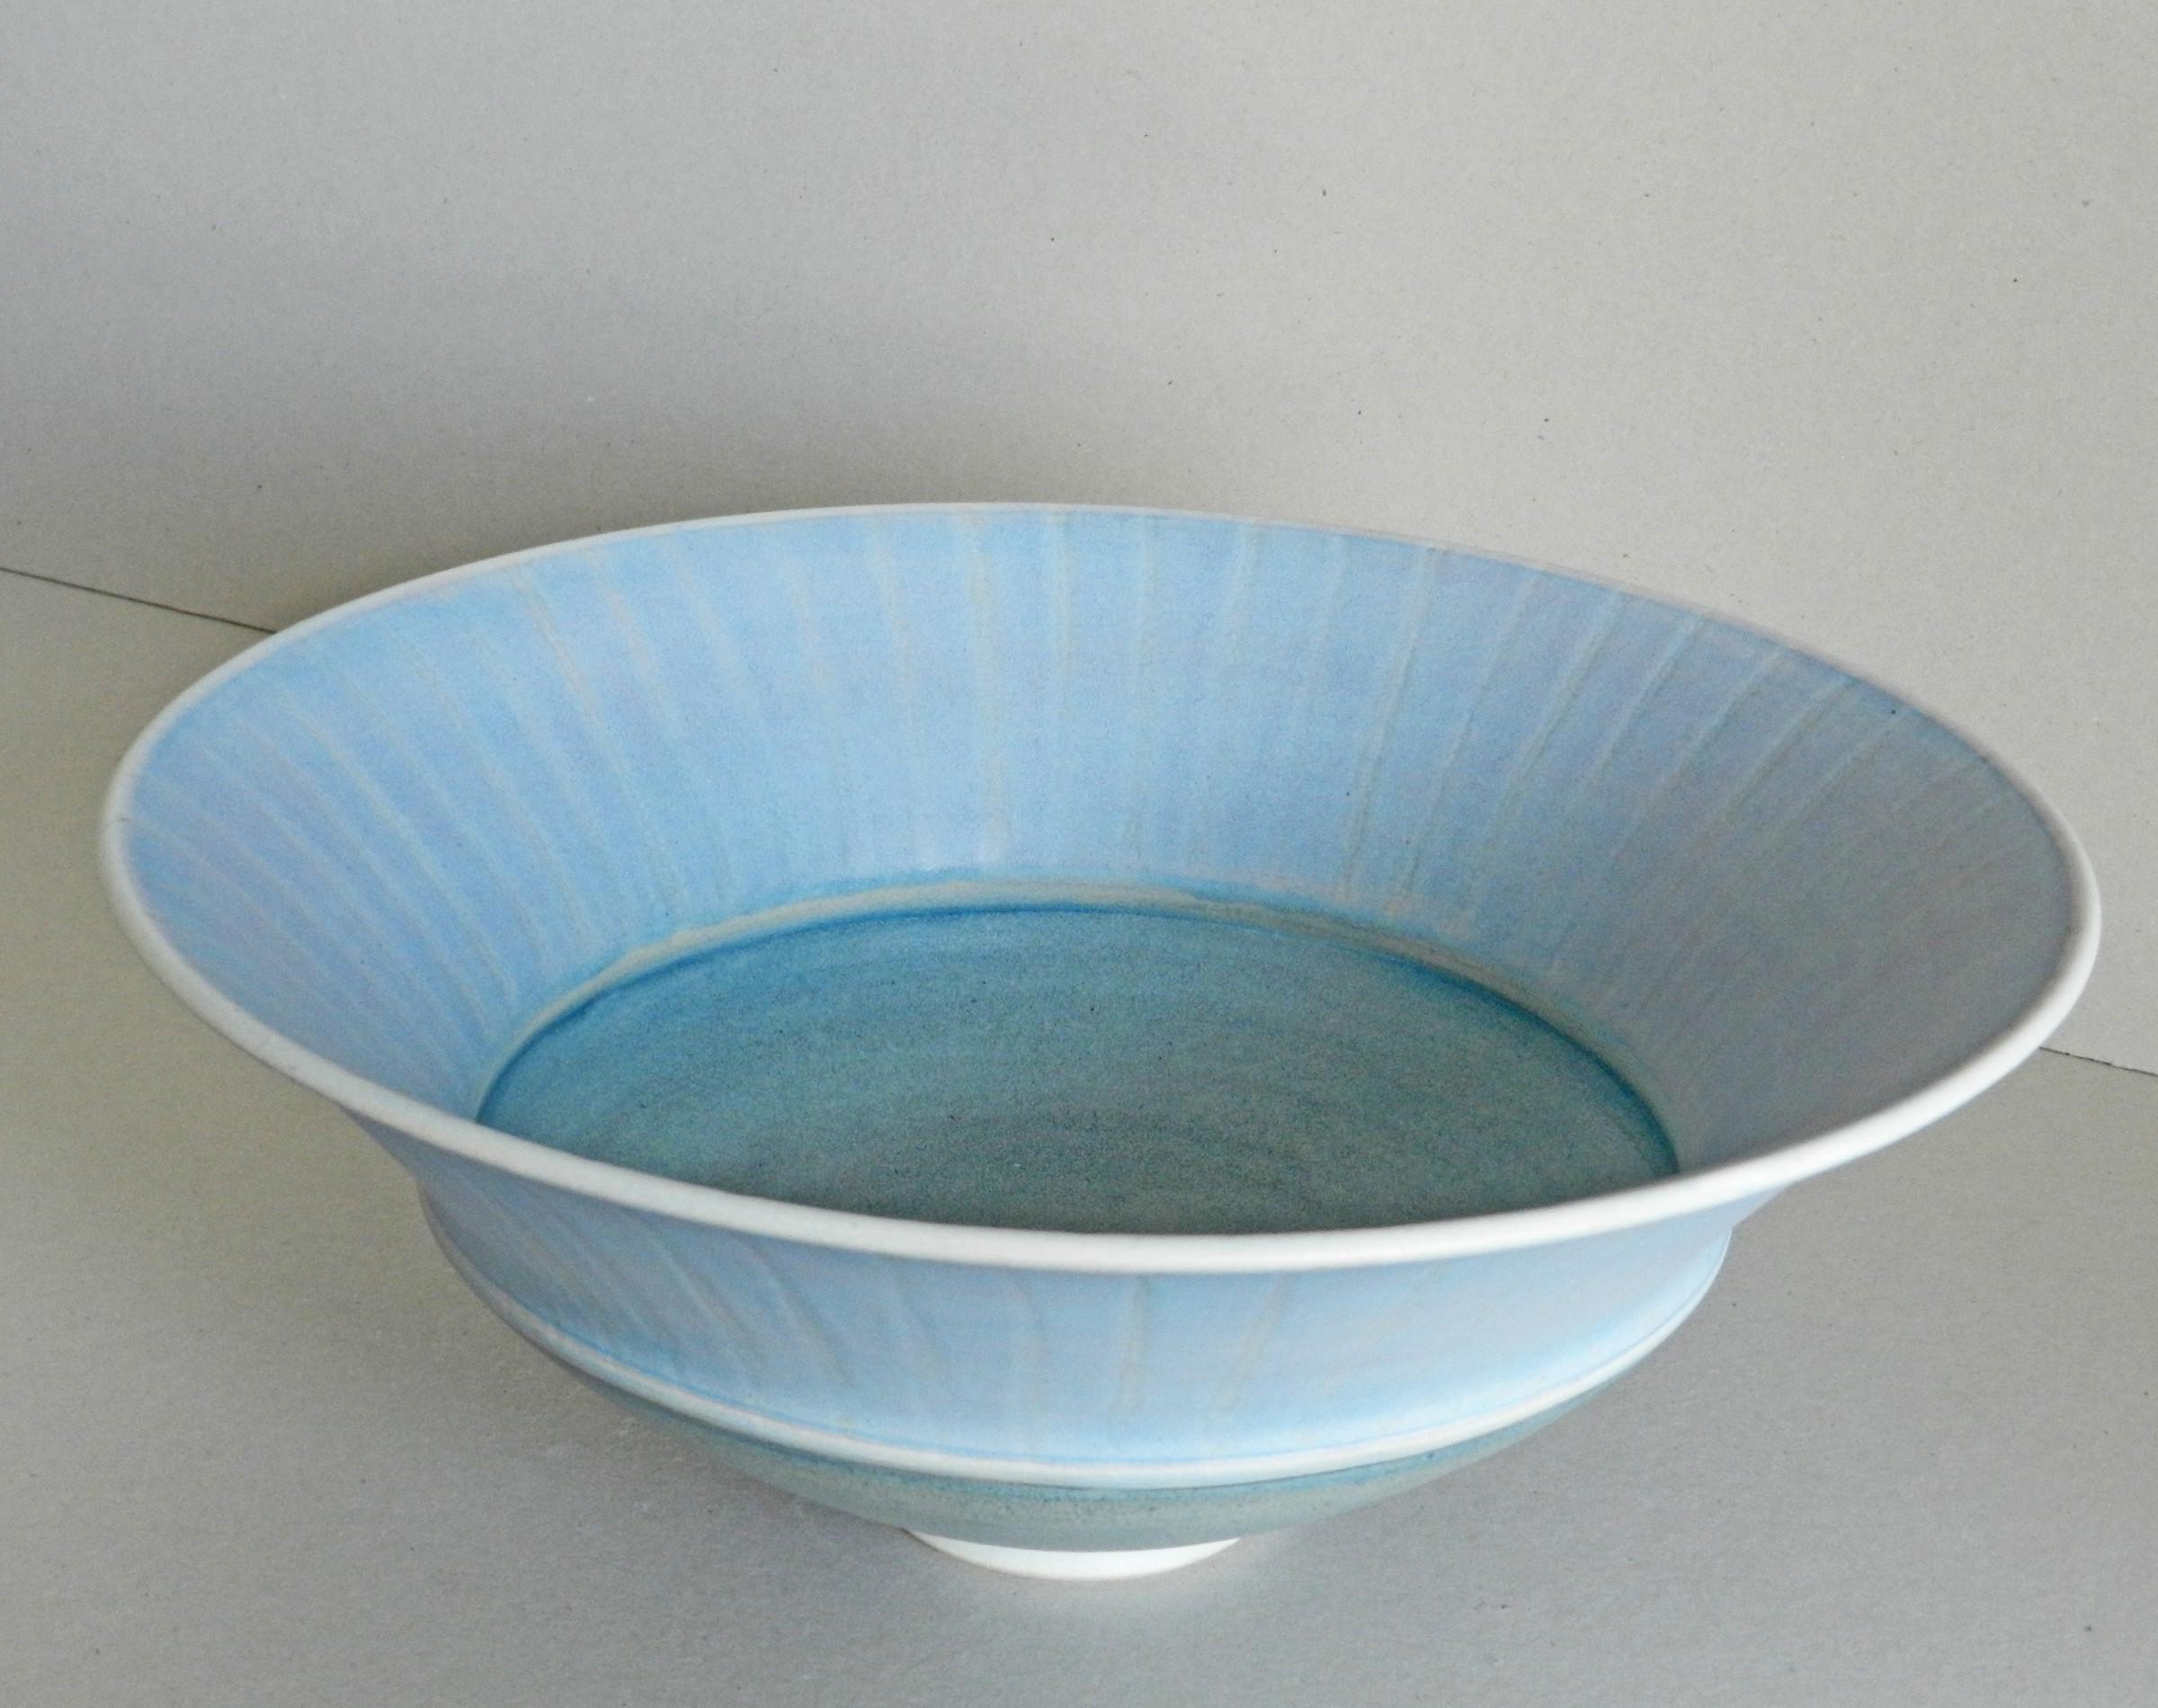 "<span class=""link fancybox-details-link""><a href=""/artists/243-christine-feiler/works/6870-christine-feiler-large-double-rim-bowl-2018/"">View Detail Page</a></span><div class=""artist""><strong>Christine Feiler</strong></div> b. 1948 <div class=""title""><em>Large double rim bowl</em>, 2018</div> <div class=""signed_and_dated"">Ceramicist mark on base</div> <div class=""medium"">Stoneware with enamels</div><div class=""price"">£385.00</div><div class=""copyright_line"">Copyright The Artist</div>"